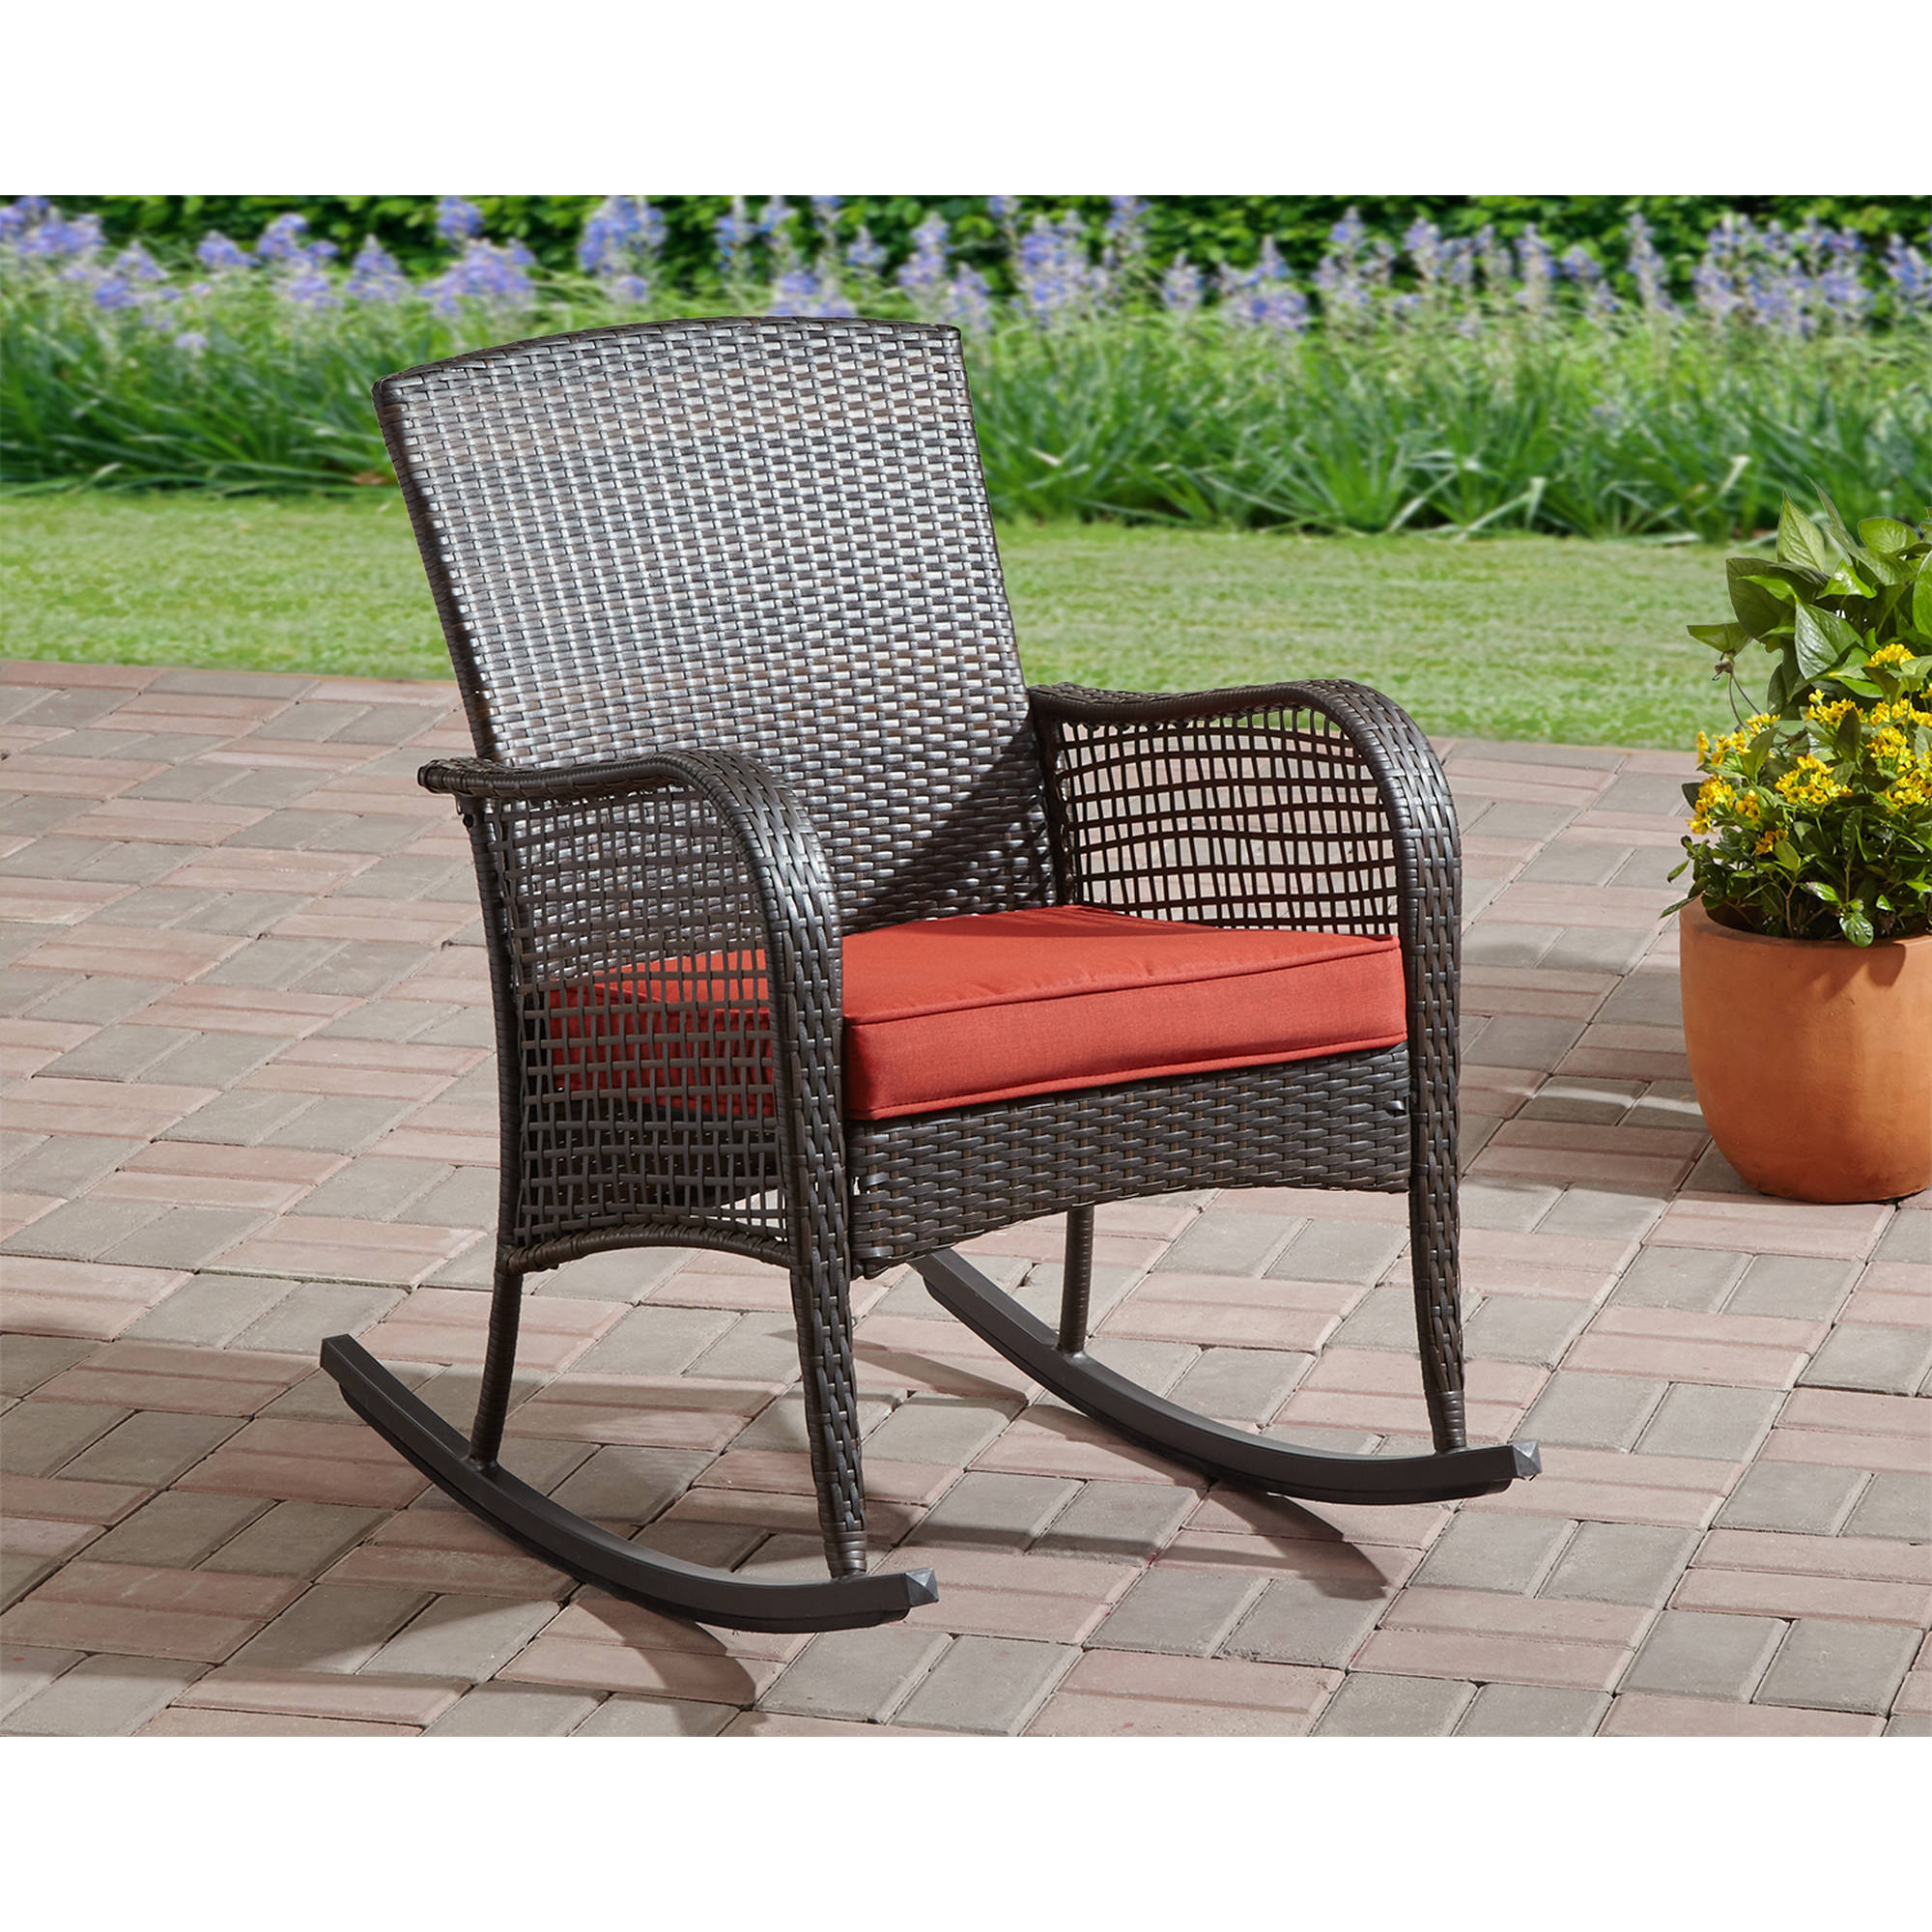 Click Thumbnail to Enlarge. Cushioned wicker rocking chair